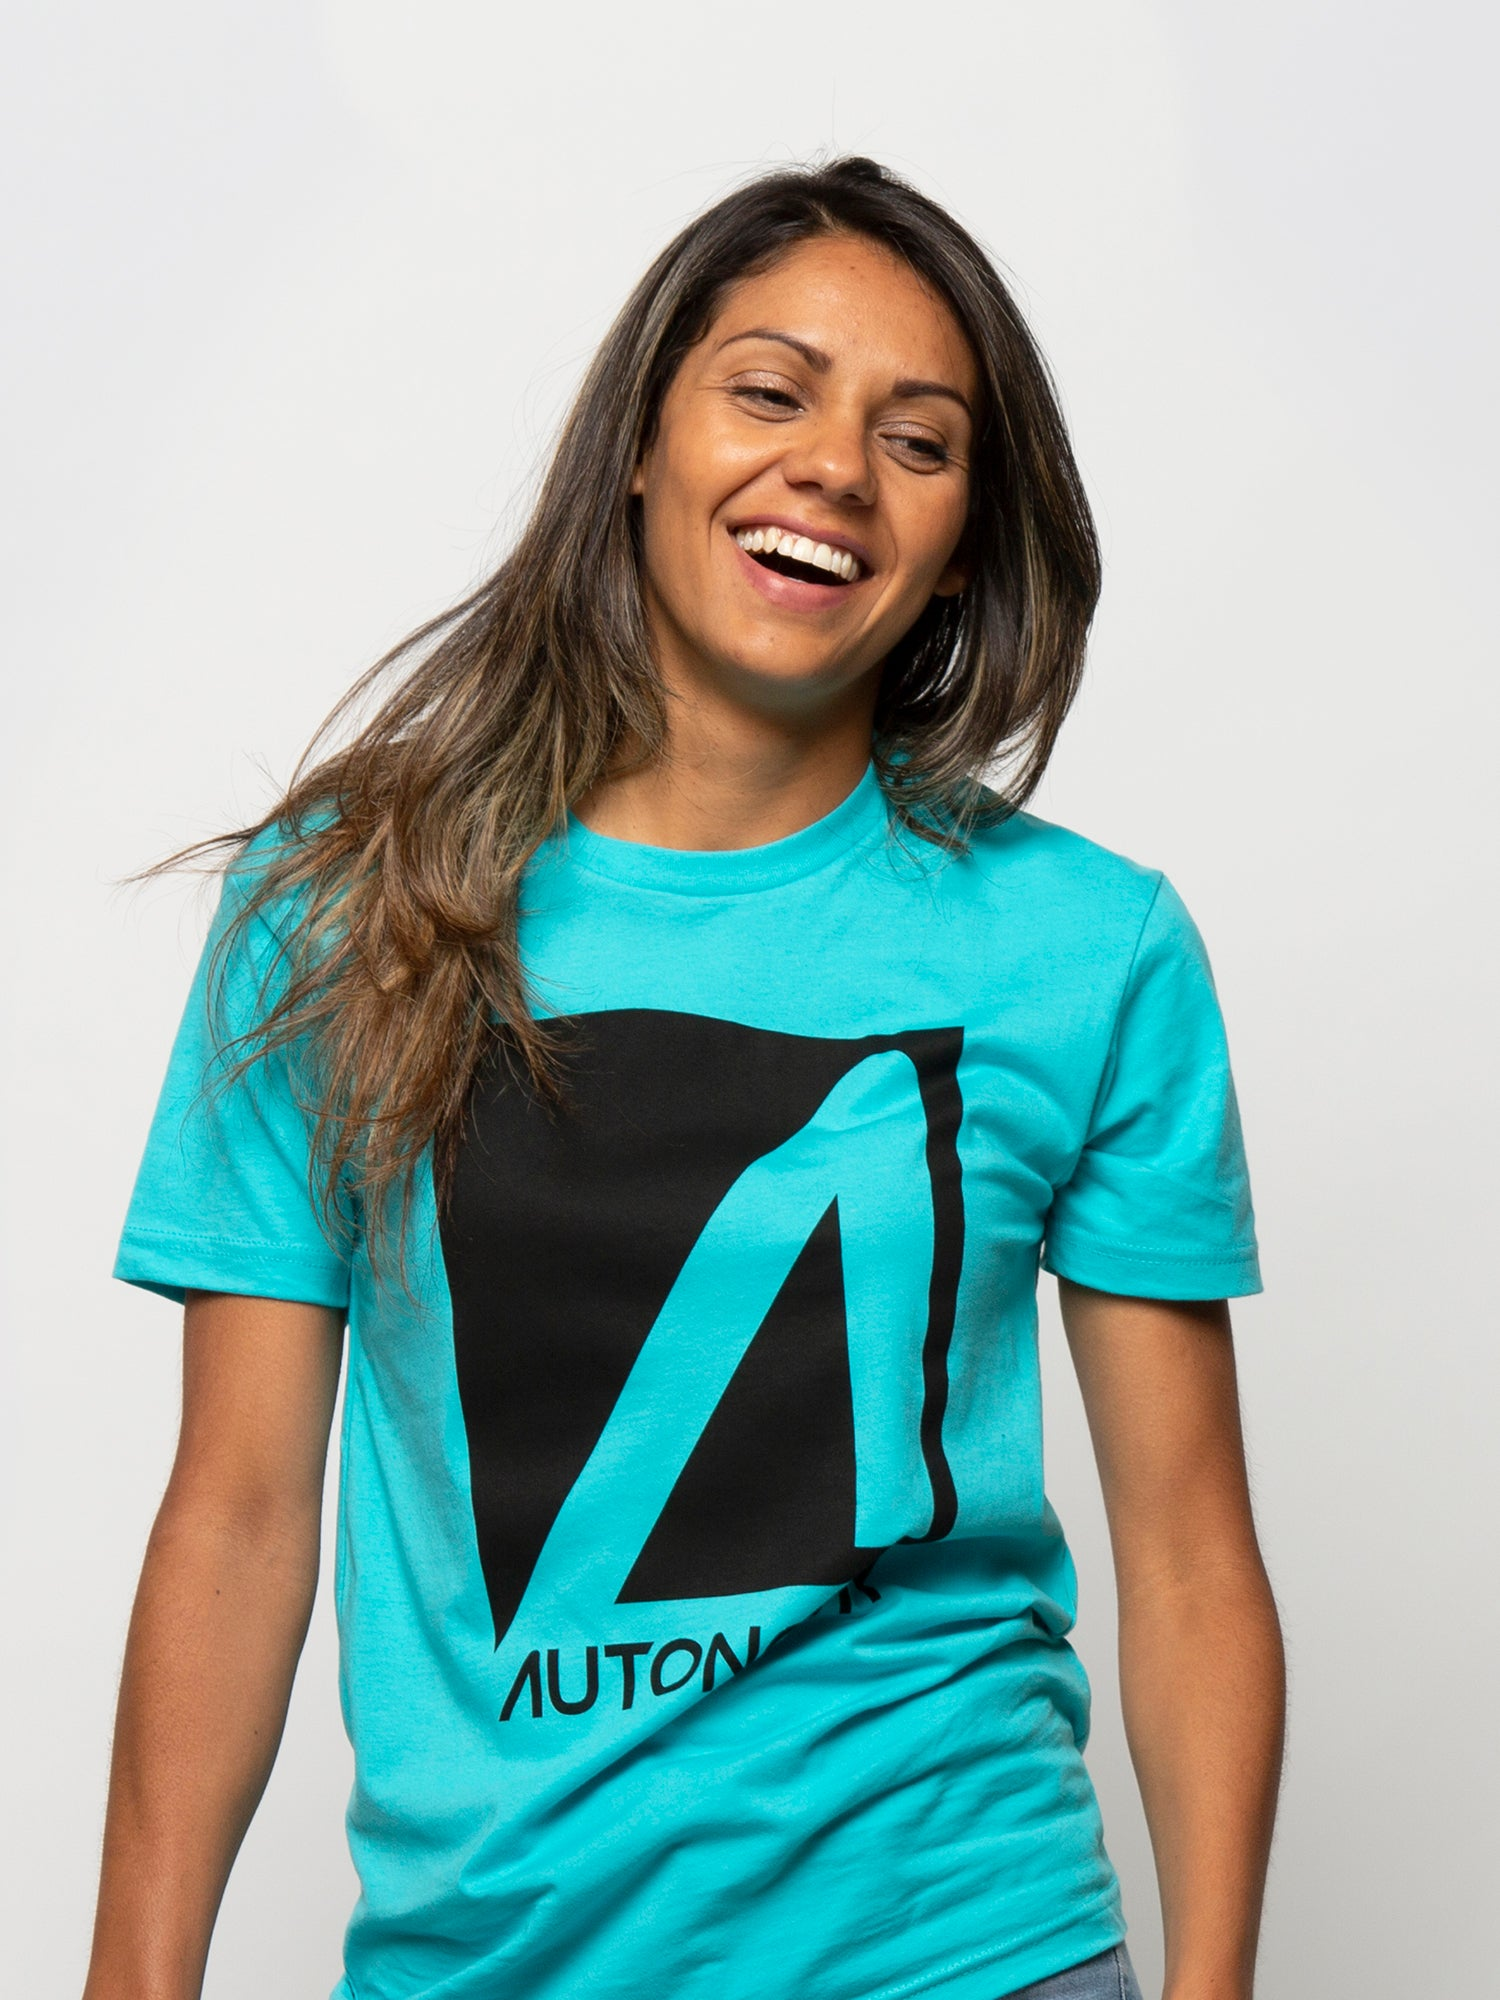 Autonomy No Comply T-shirt - Tahiti Blue